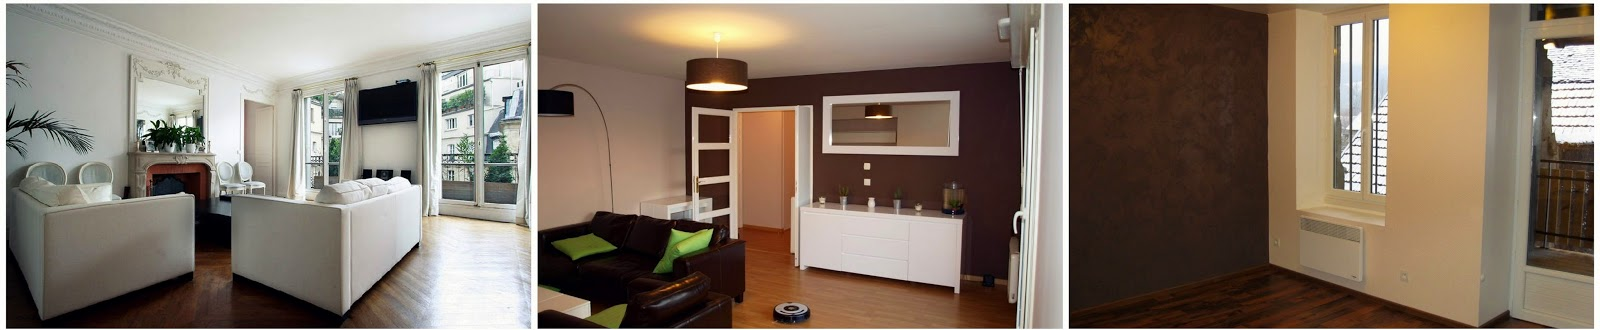 renovation travaux peintre en batiment appartement peintre professionnel cesu. Black Bedroom Furniture Sets. Home Design Ideas